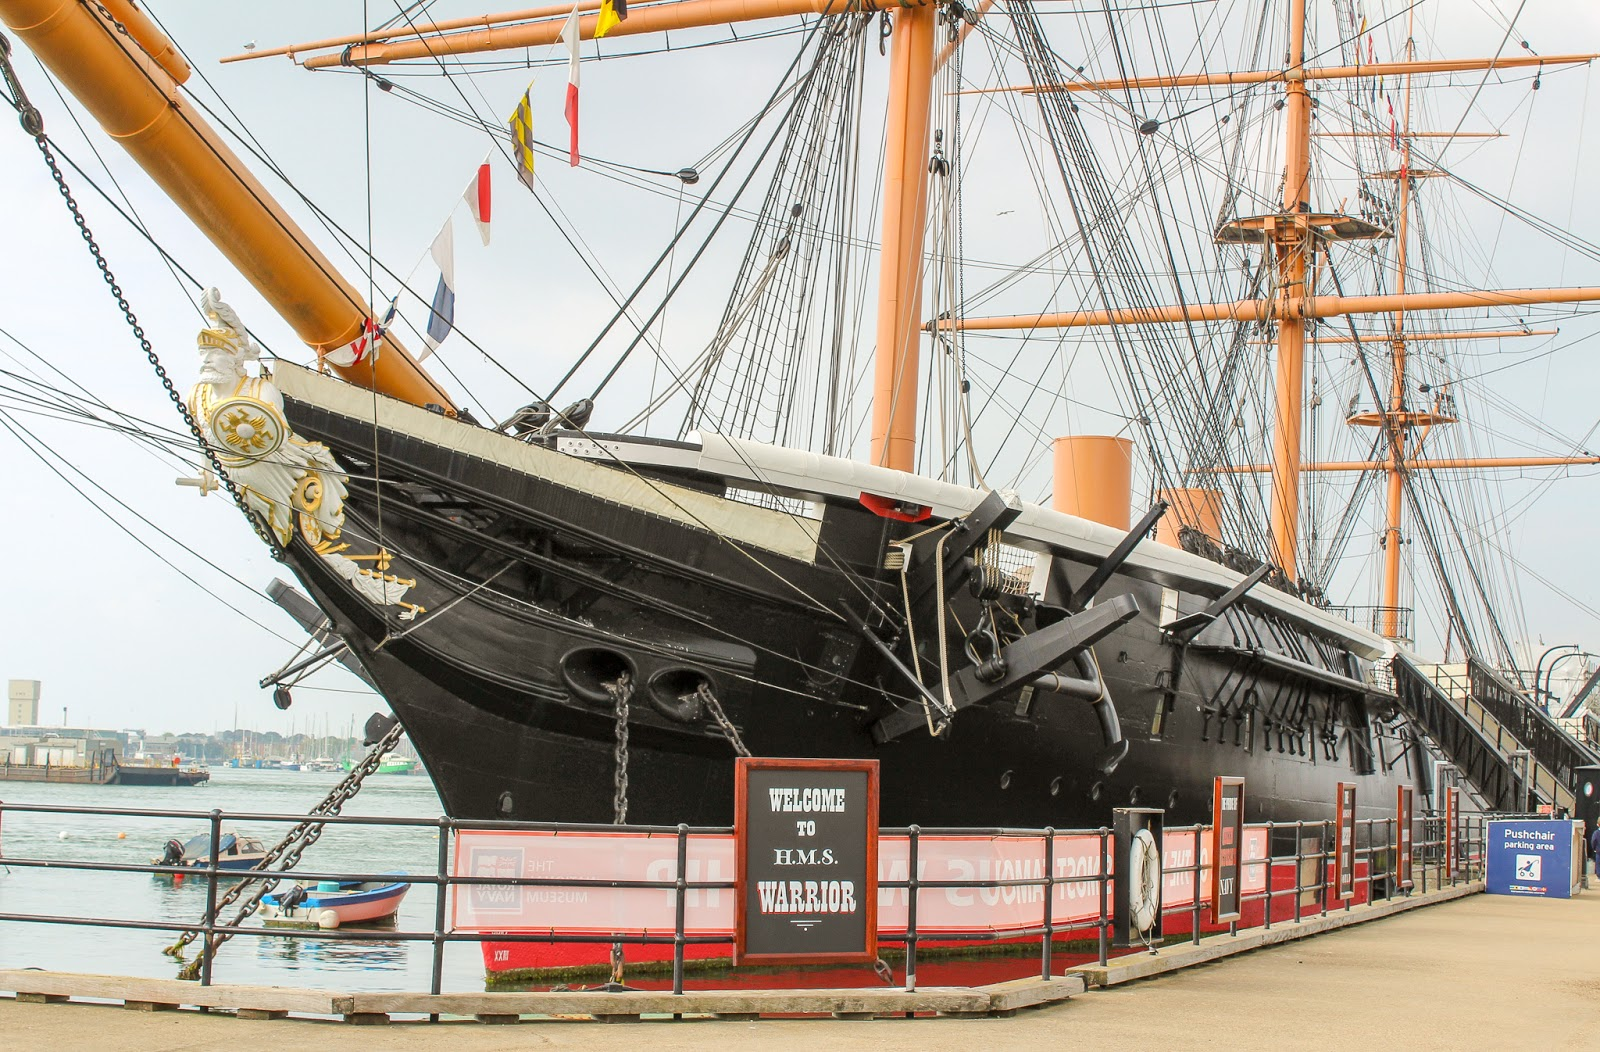 A Family Day Out at Portsmouth Historic Dockyard